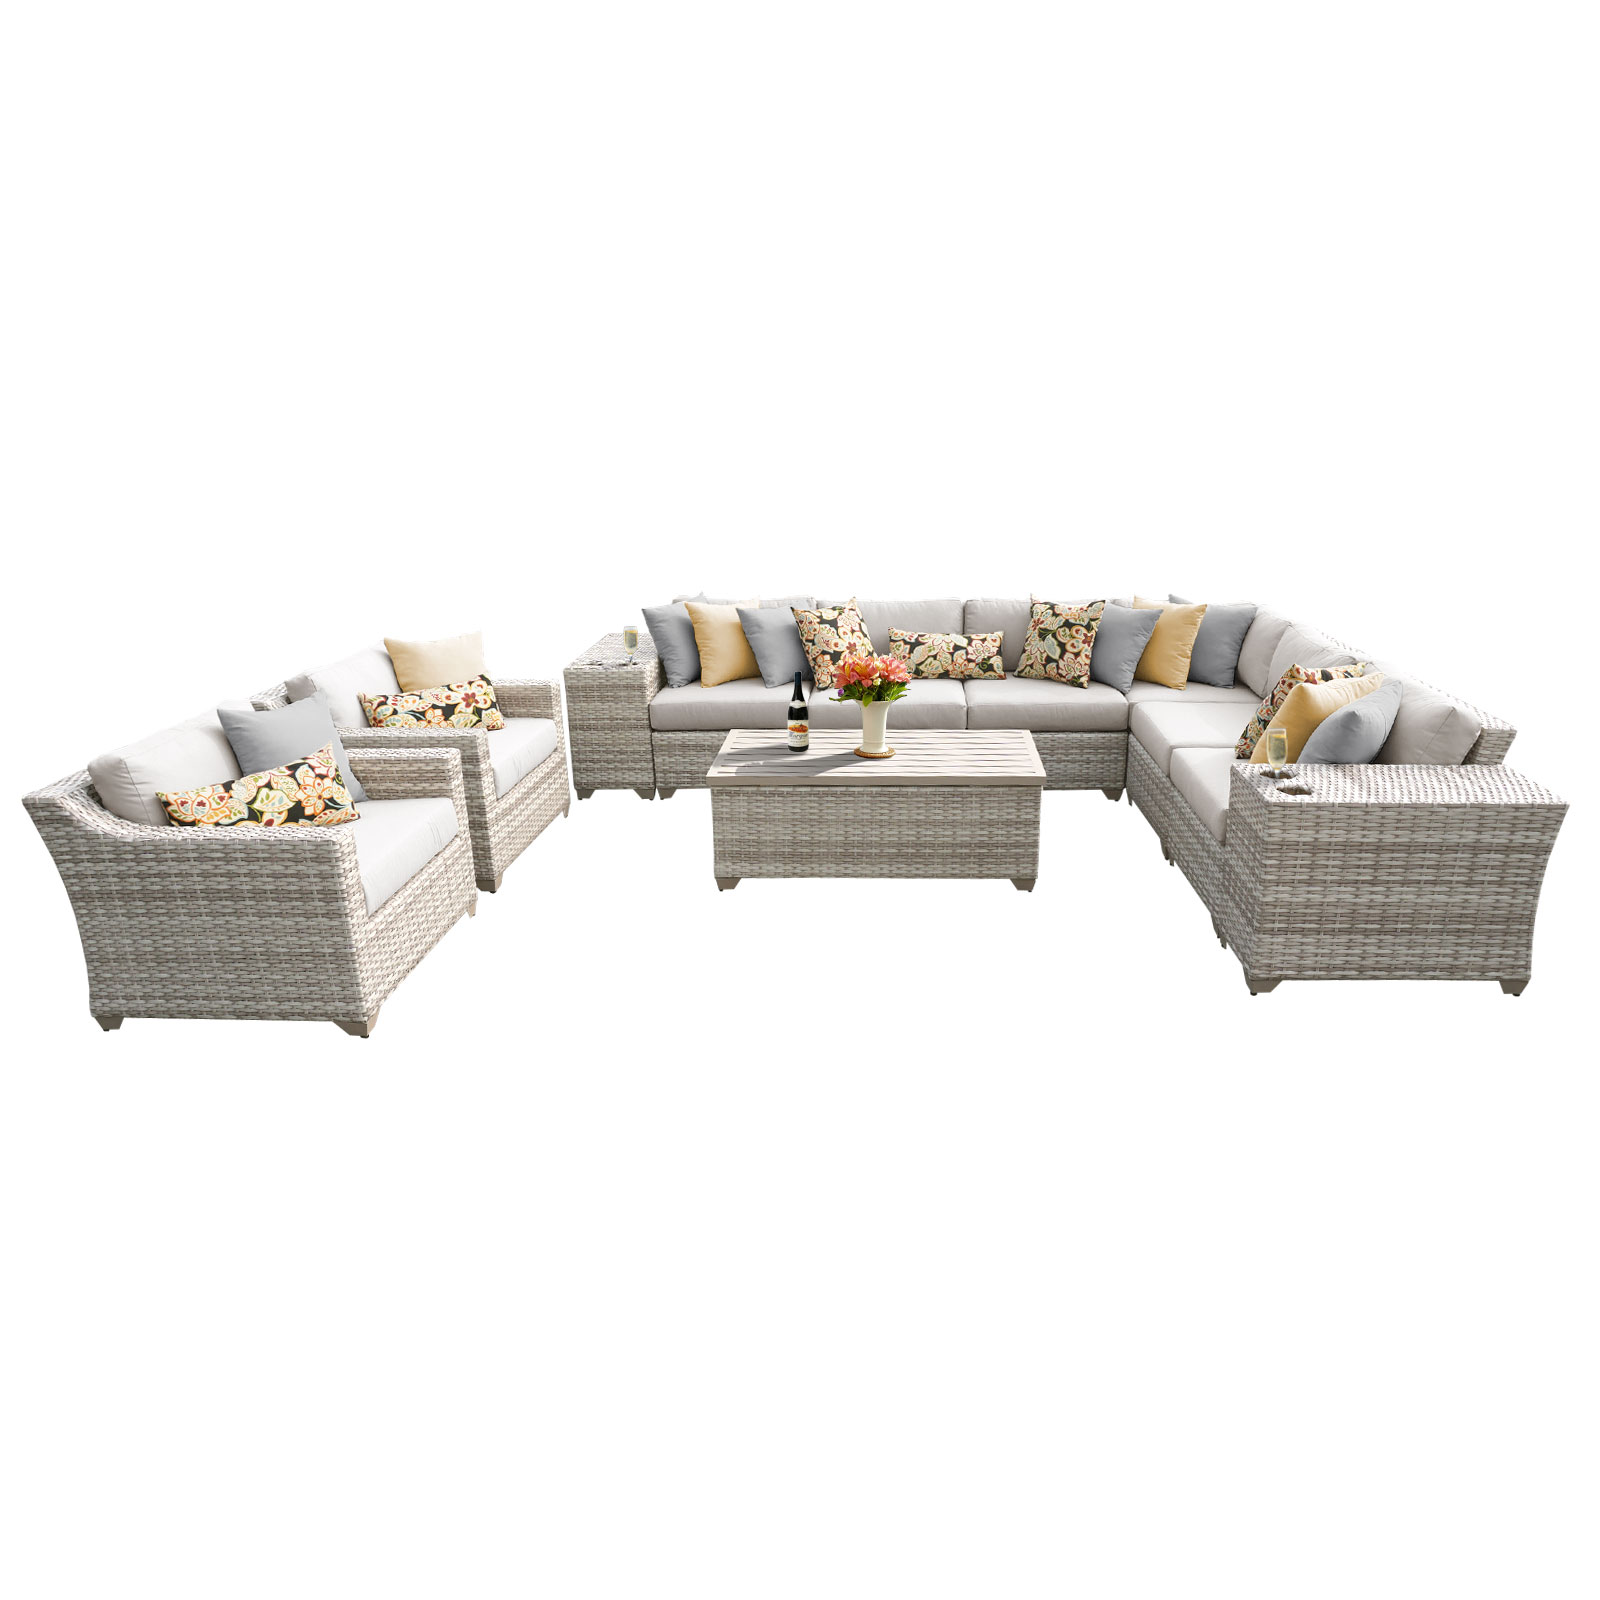 New Haven 11 Piece Outdoor Wicker Patio Furniture Set 11d by TK Classics